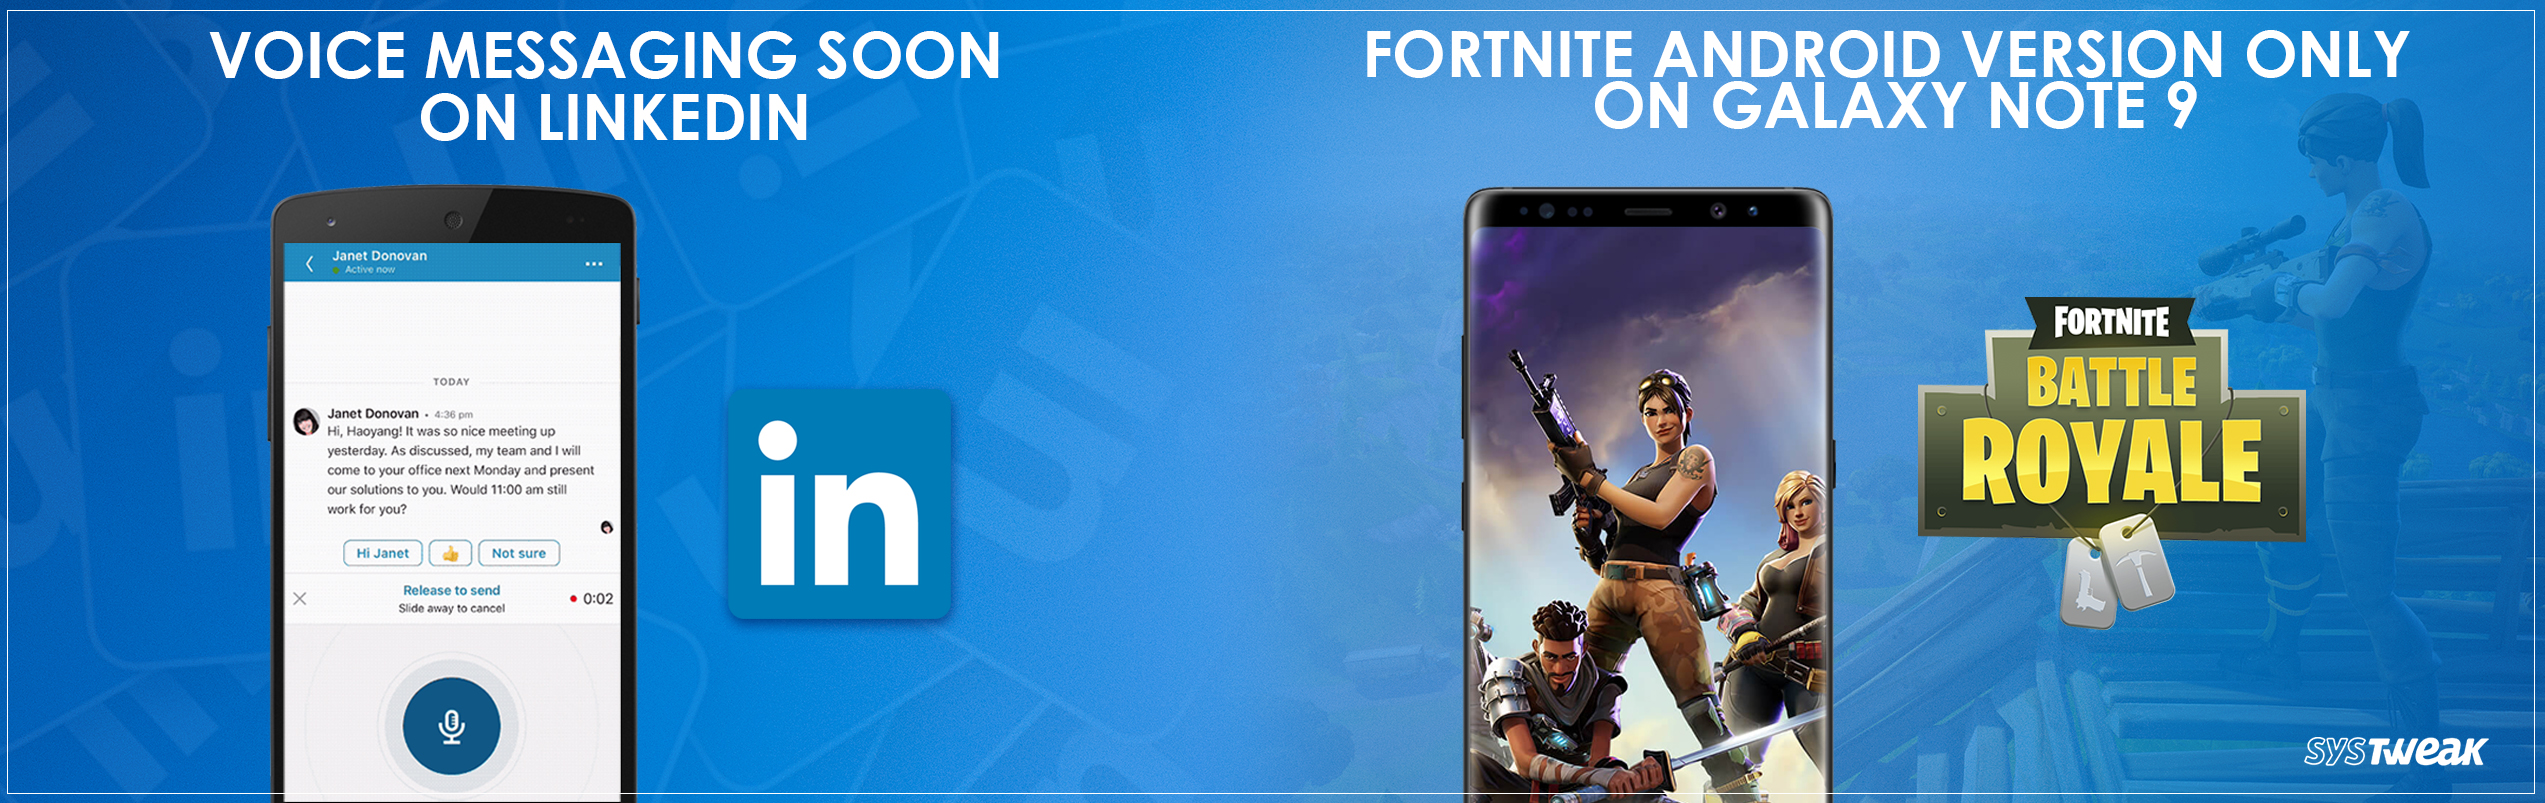 Newsletter: Linkedin To Offer Voice Messaging Services & Fortnite Android Exclusively For Samsung Galaxy Note 9